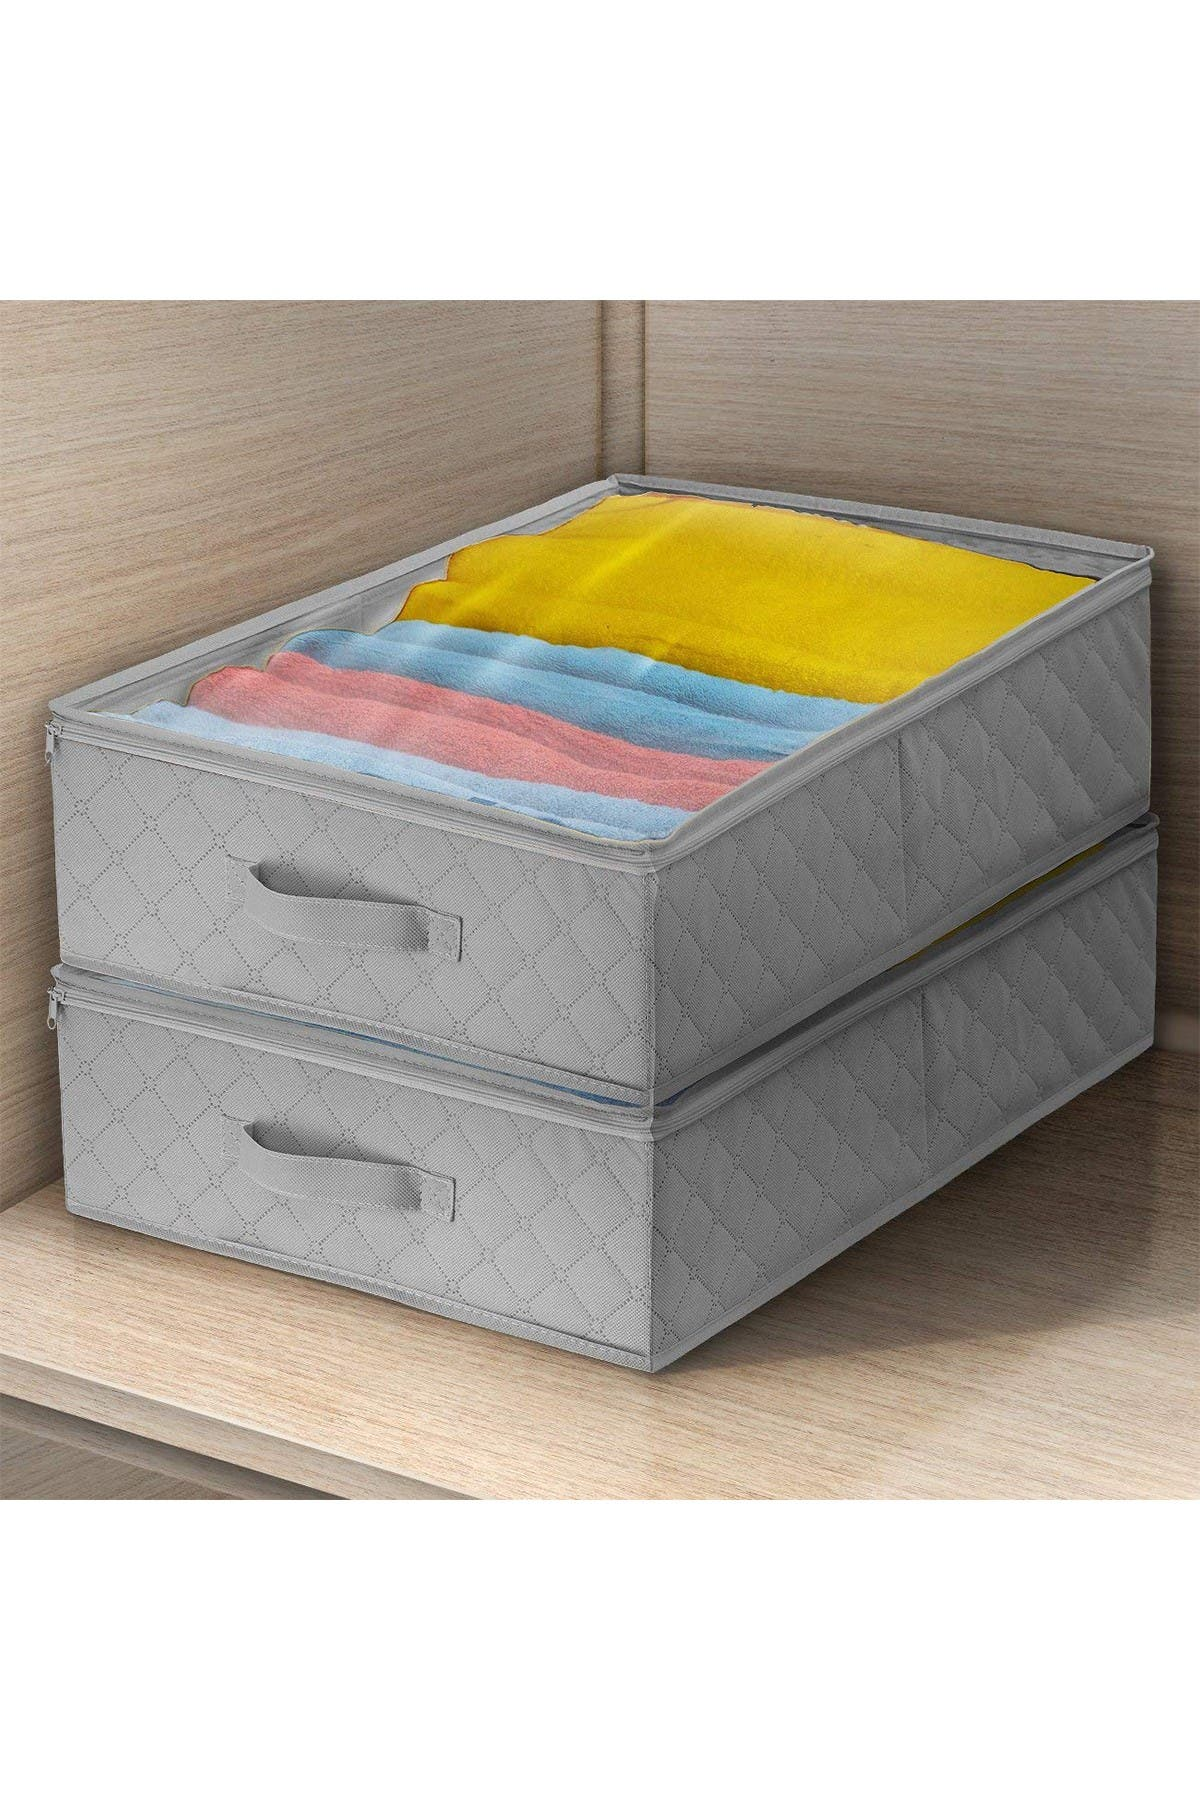 Image of Sorbus Gray Storage Bags Closet & Underbed Organizer - Set of 2